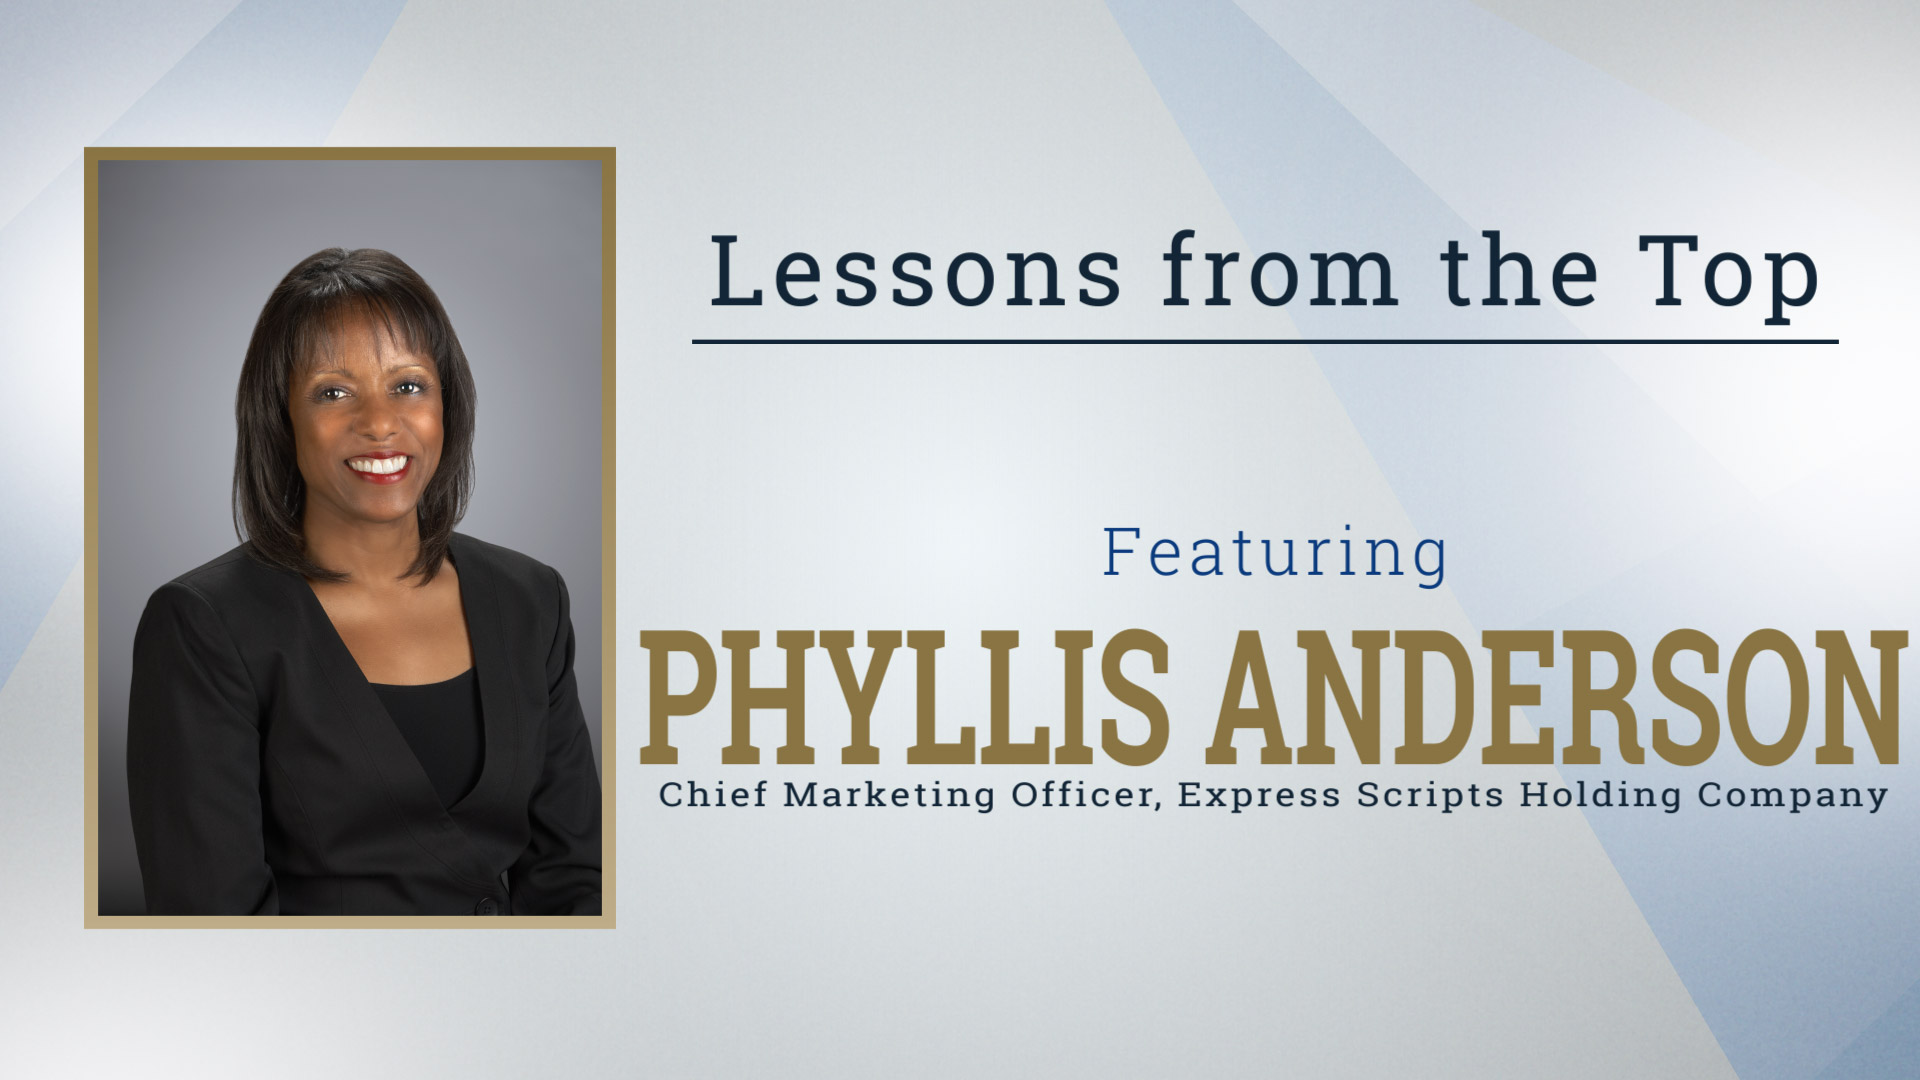 Lessons from the Top Featuring Phyllis Anderson